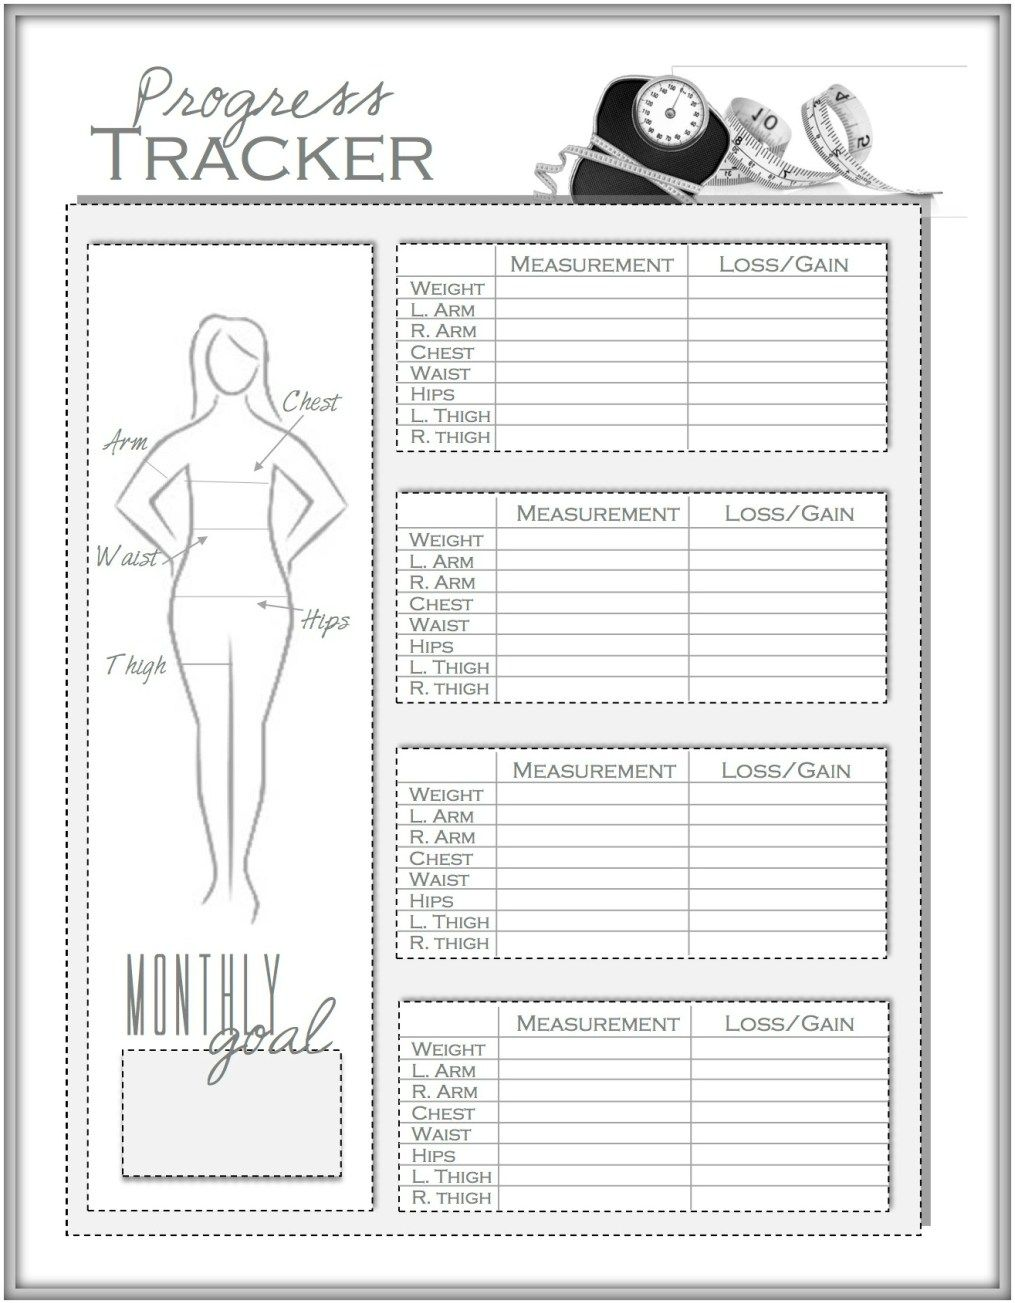 weight loss and measurement progress tracker i work oooooout